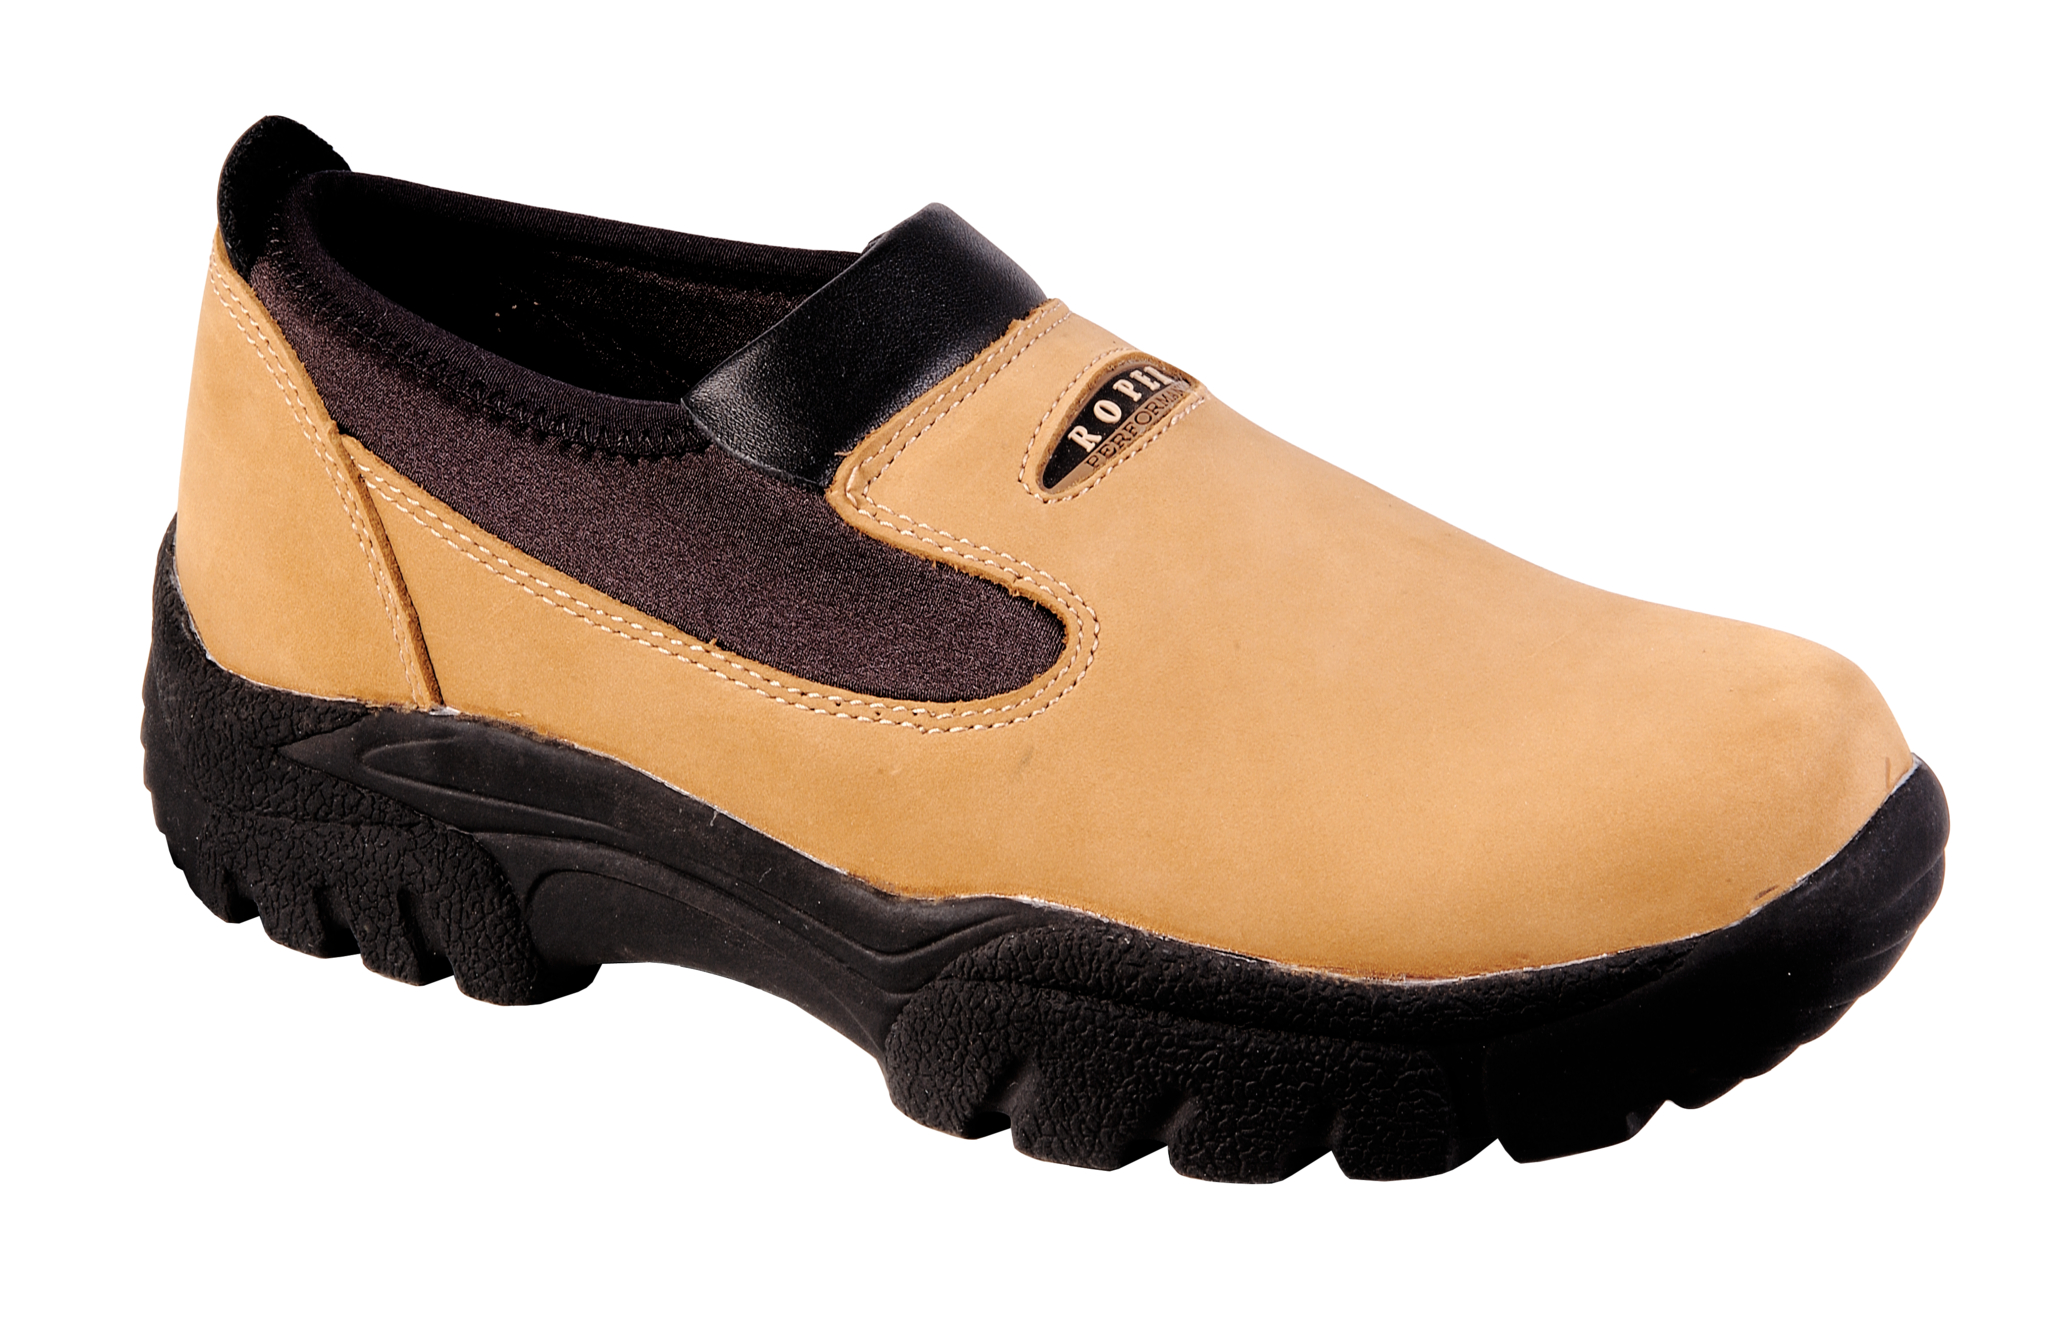 Shoes For Men Online U2013 Most Comfortable Work Shoes